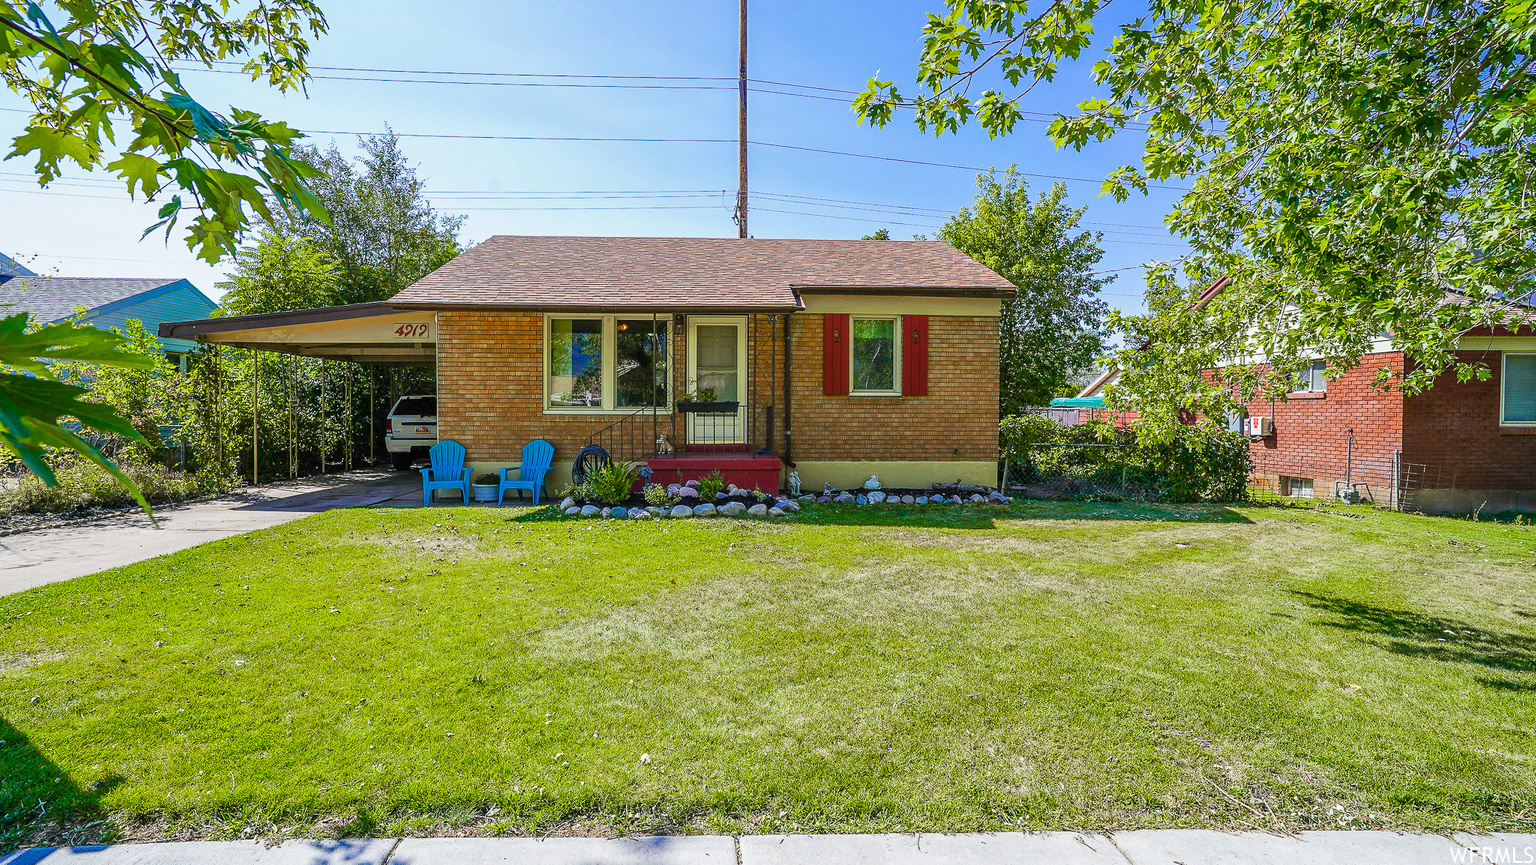 4919 S RIDGELINE DR, Washington Terrace UT 84405